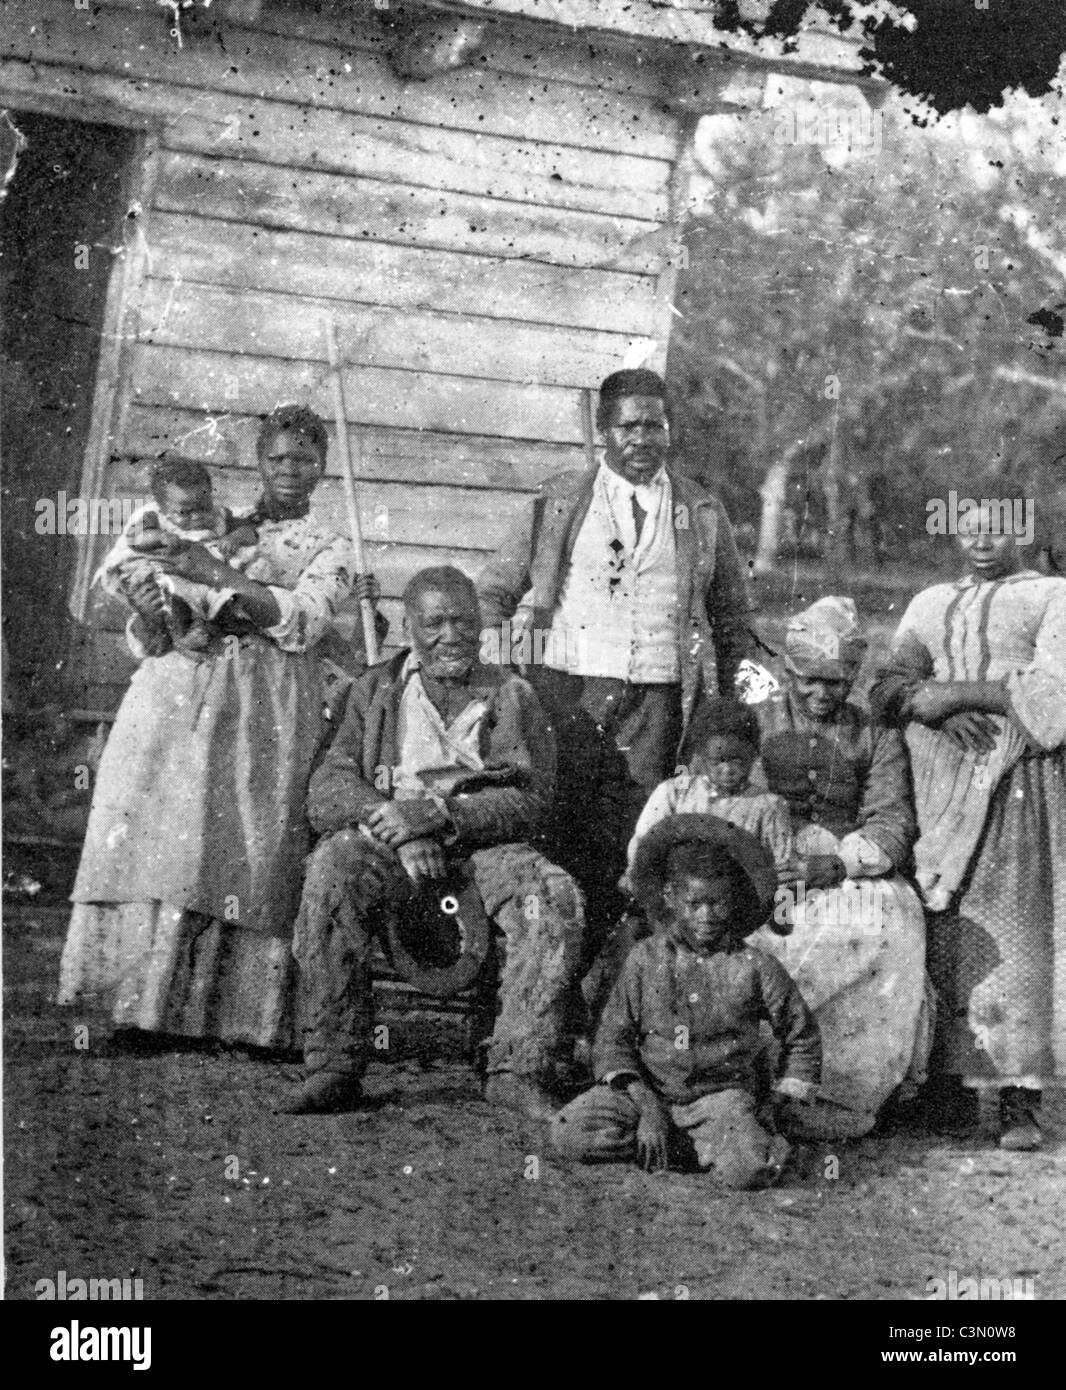 SLAVERY Unidentified family group in southern USA about 1860